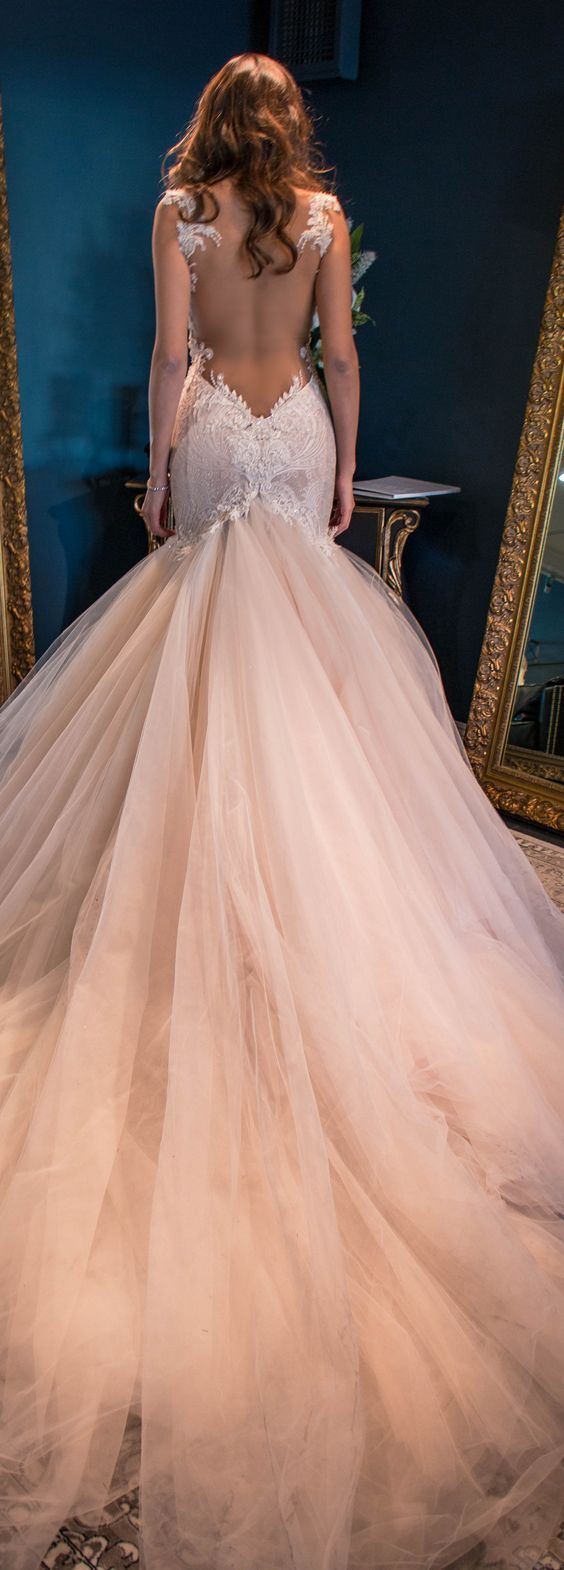 Ideas para una Boda color Blush. El color blush delicado, sutil ...